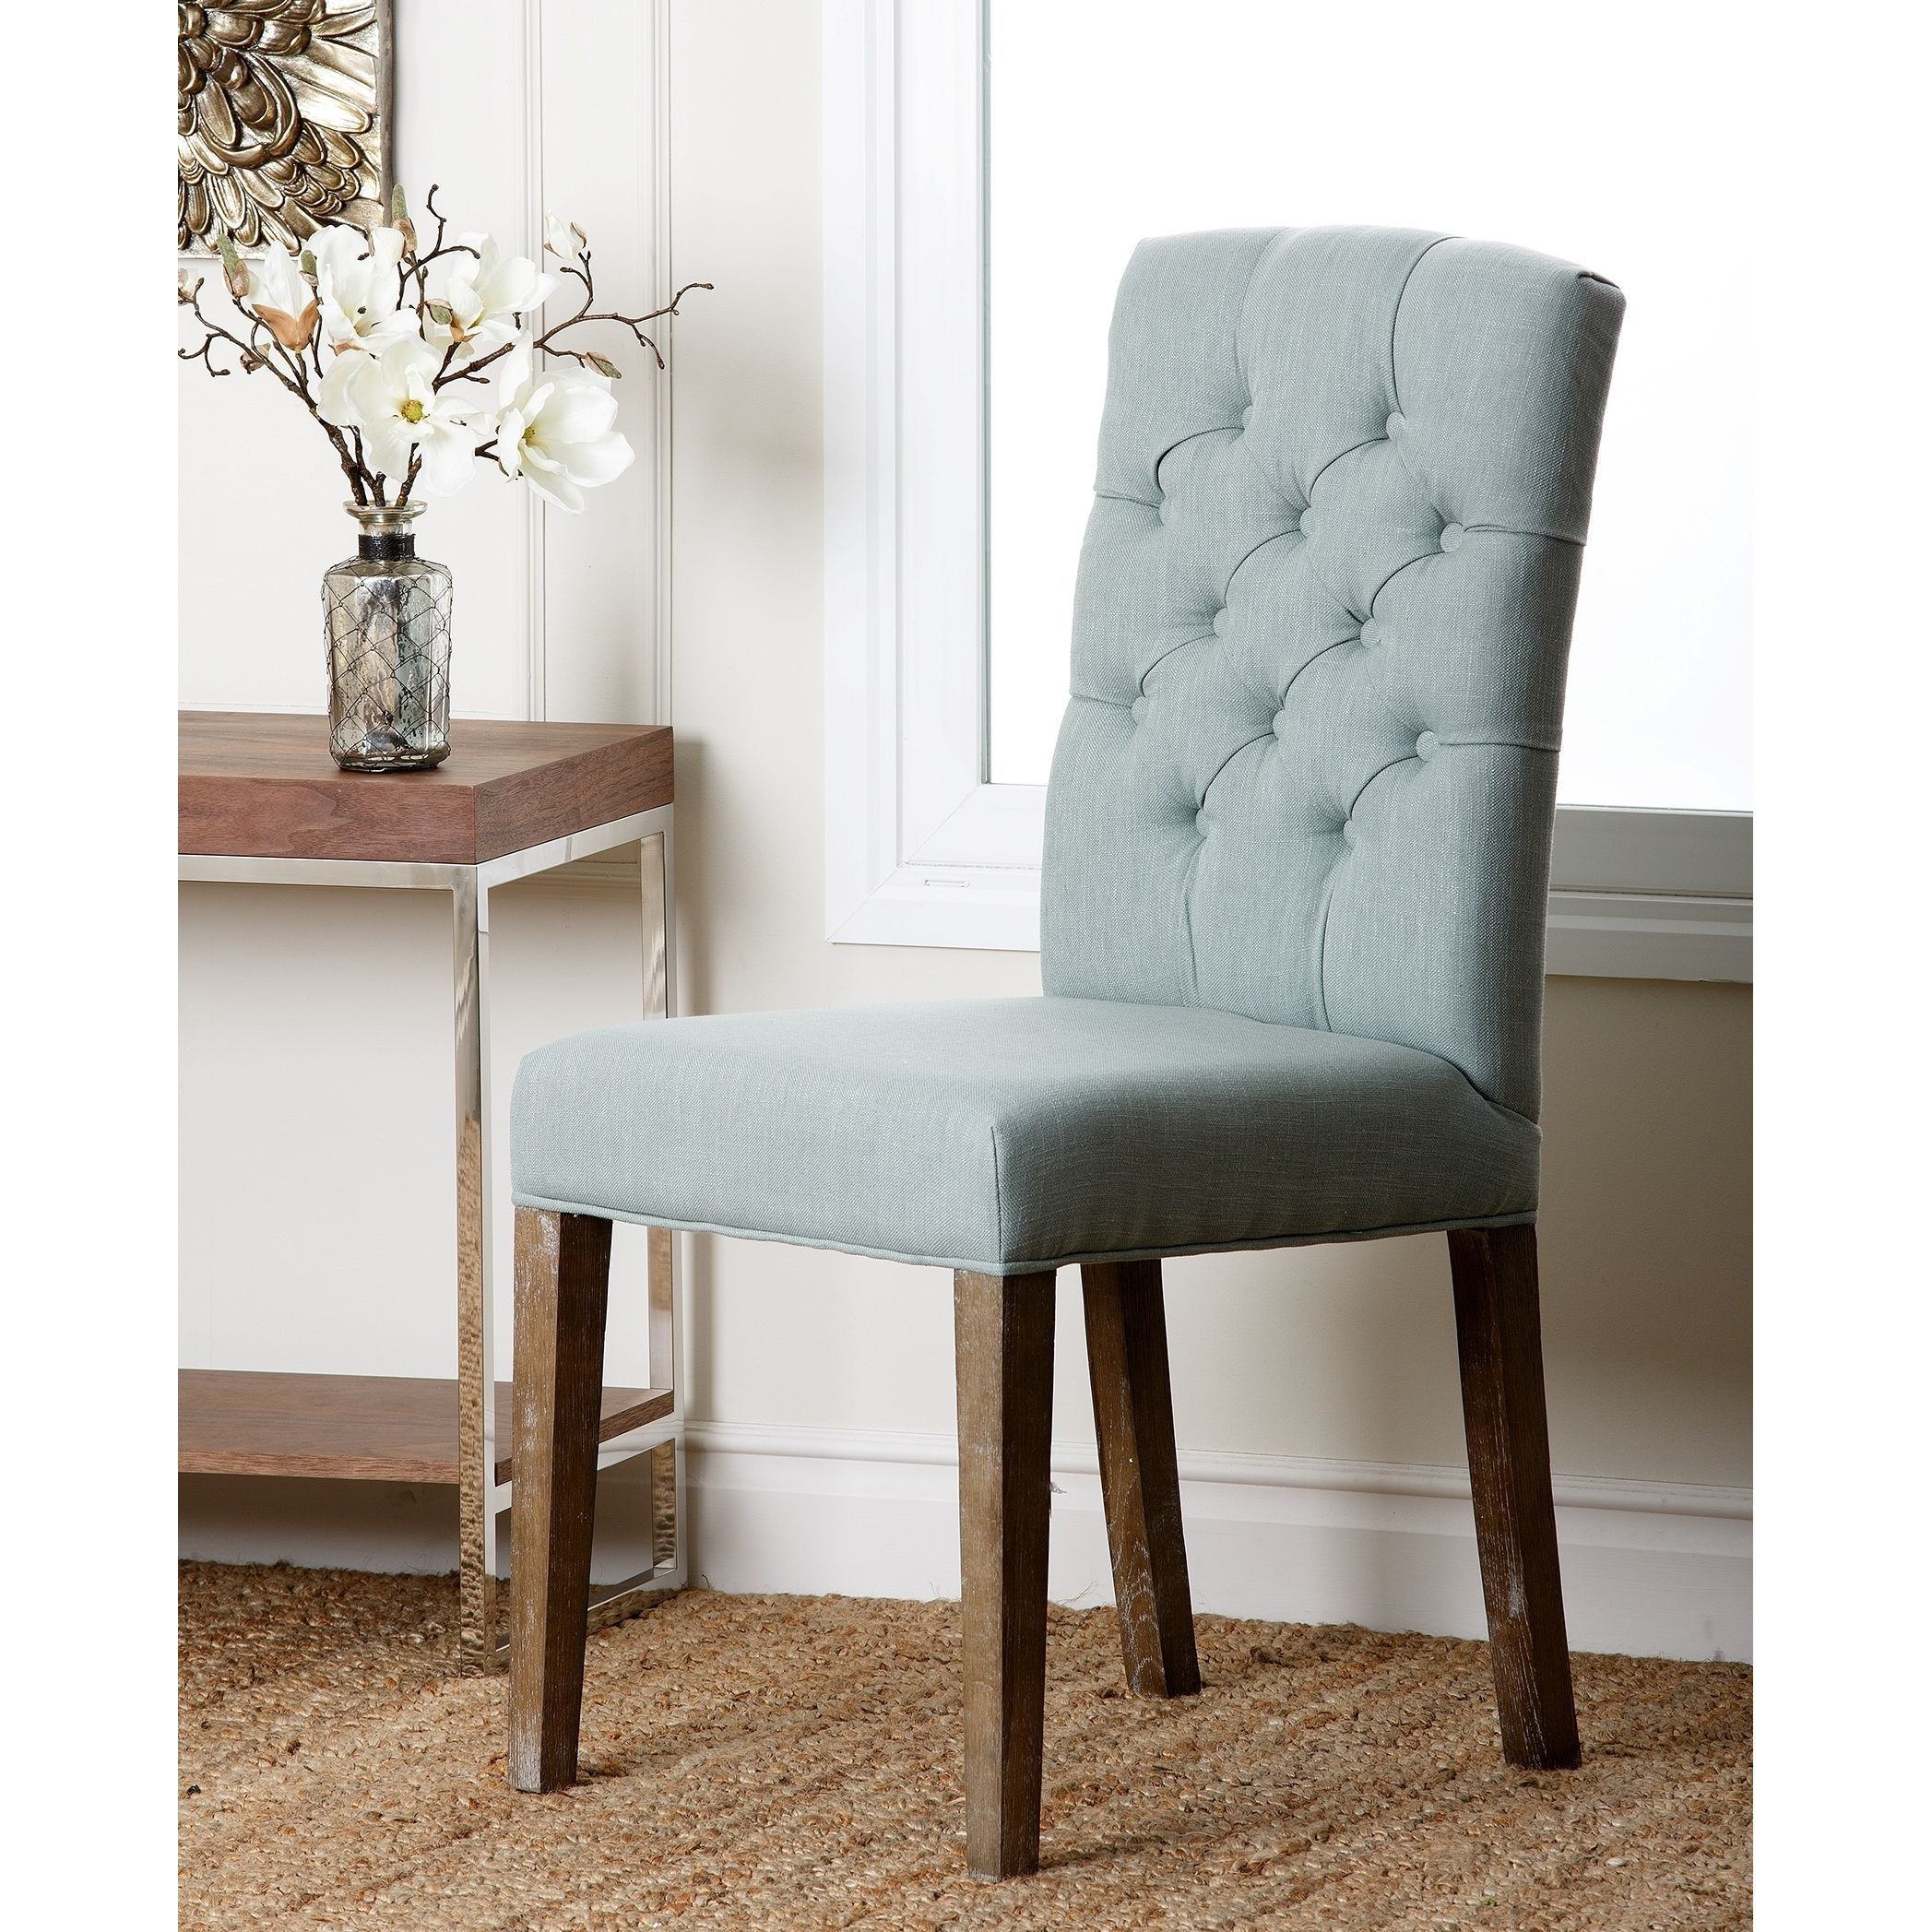 This Classy Chair Features A Light Blue Linen Upholstery